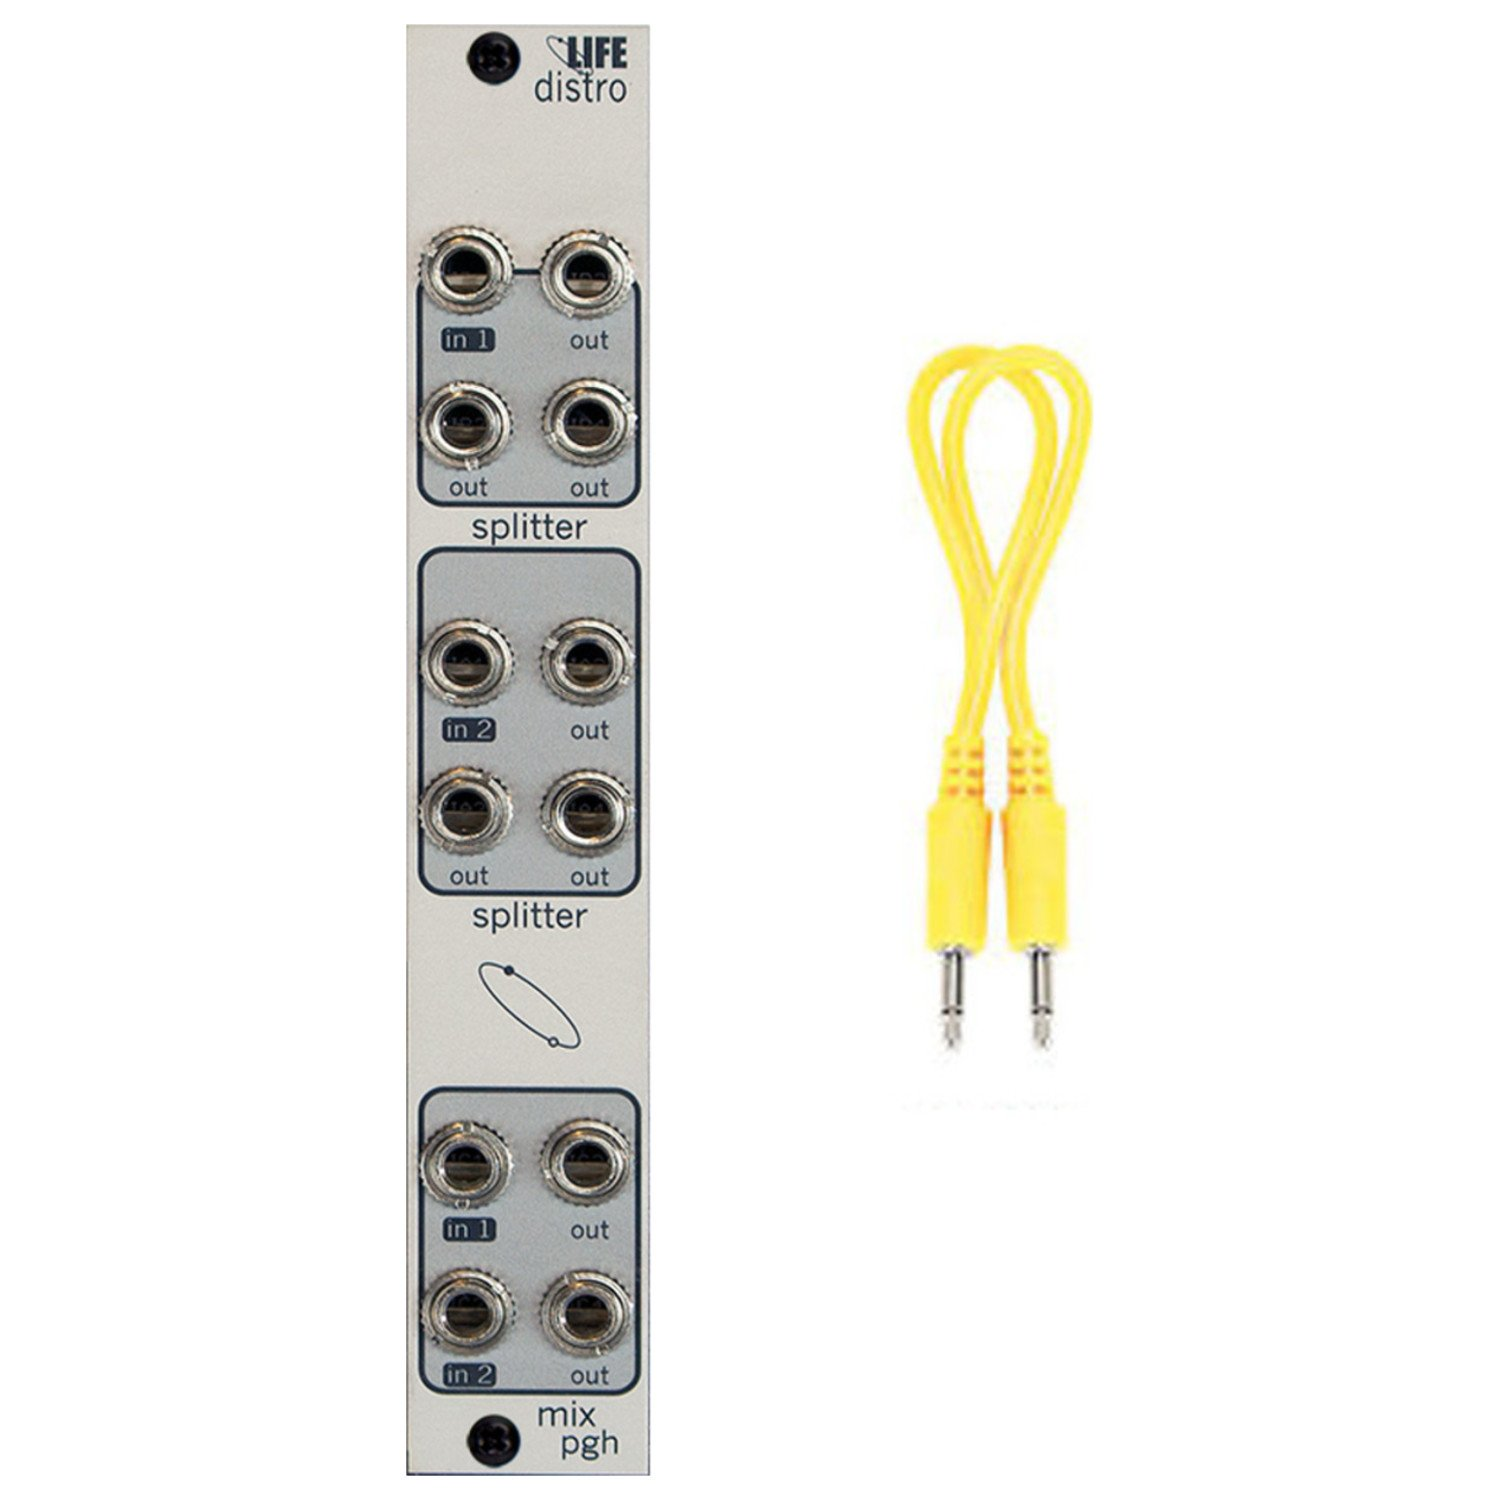 Pittsburgh Modular Lifeforms Distro Active Audio and CV Interchange Module w/ Cable by Pittsburgh Modular